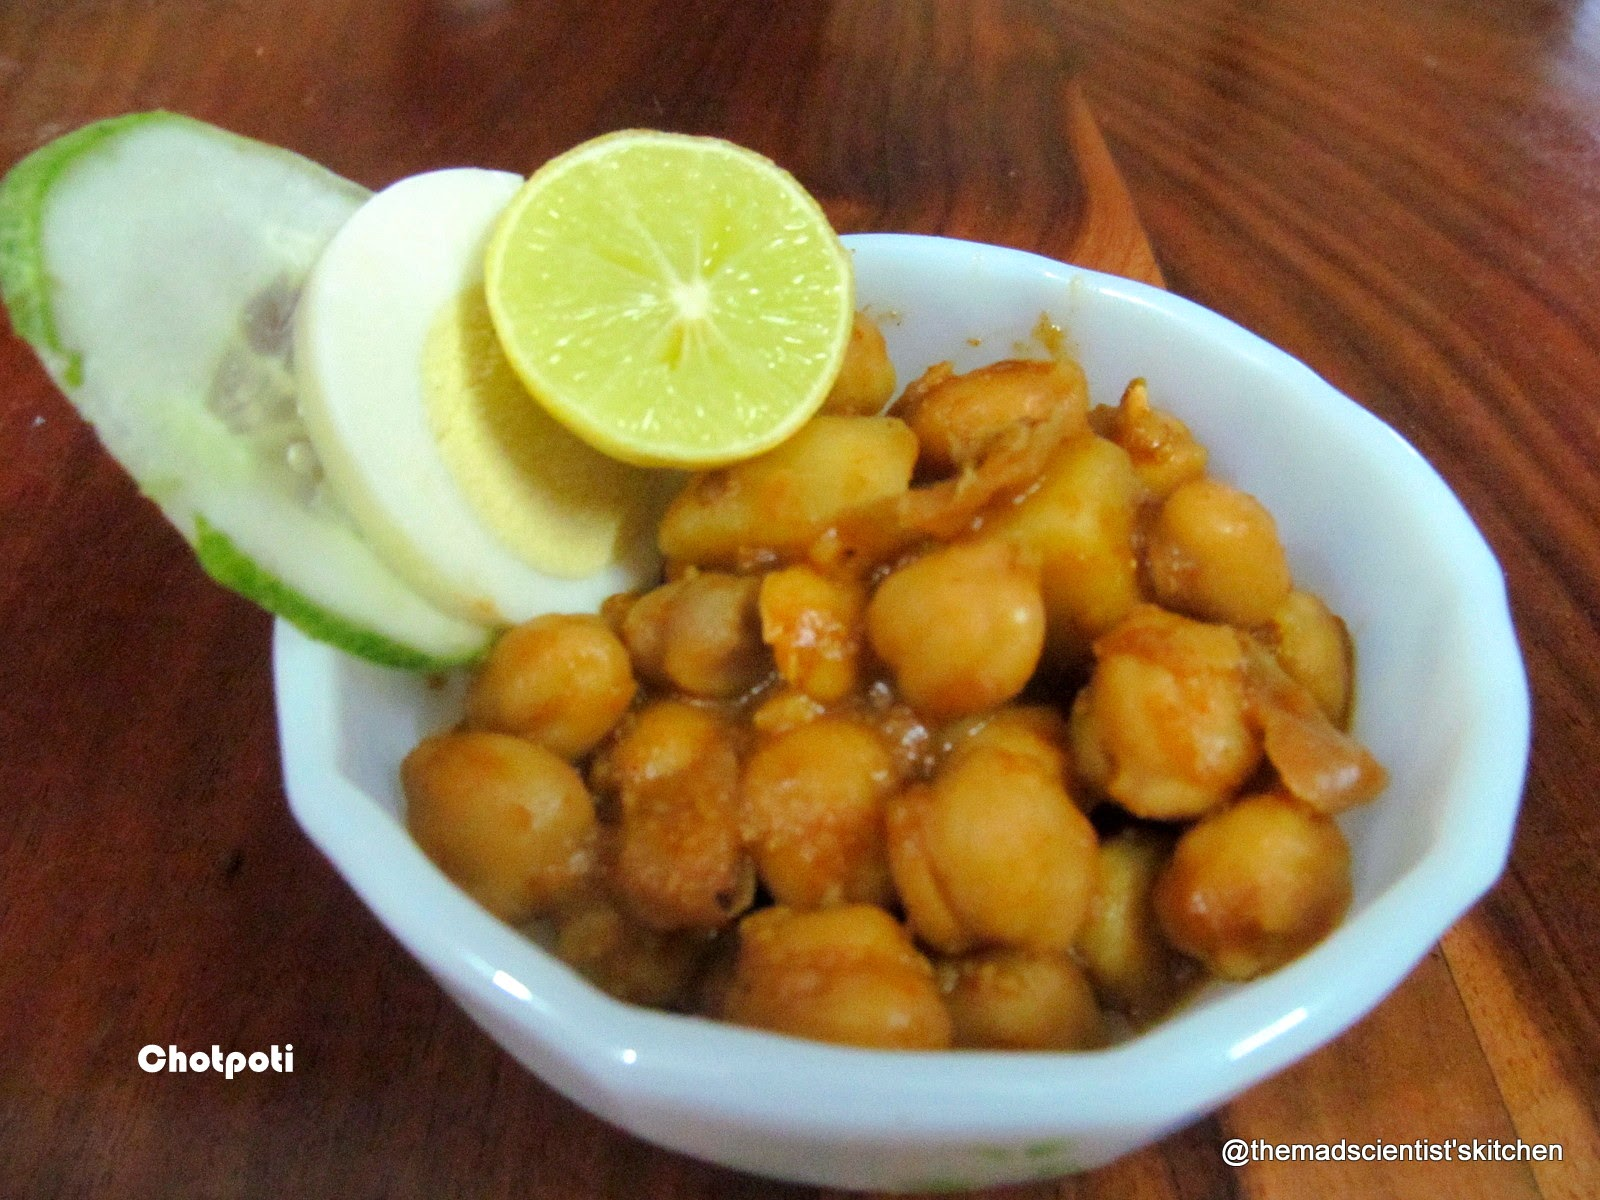 Chotpotia tangy chaat from bangladesh forumfinder Images